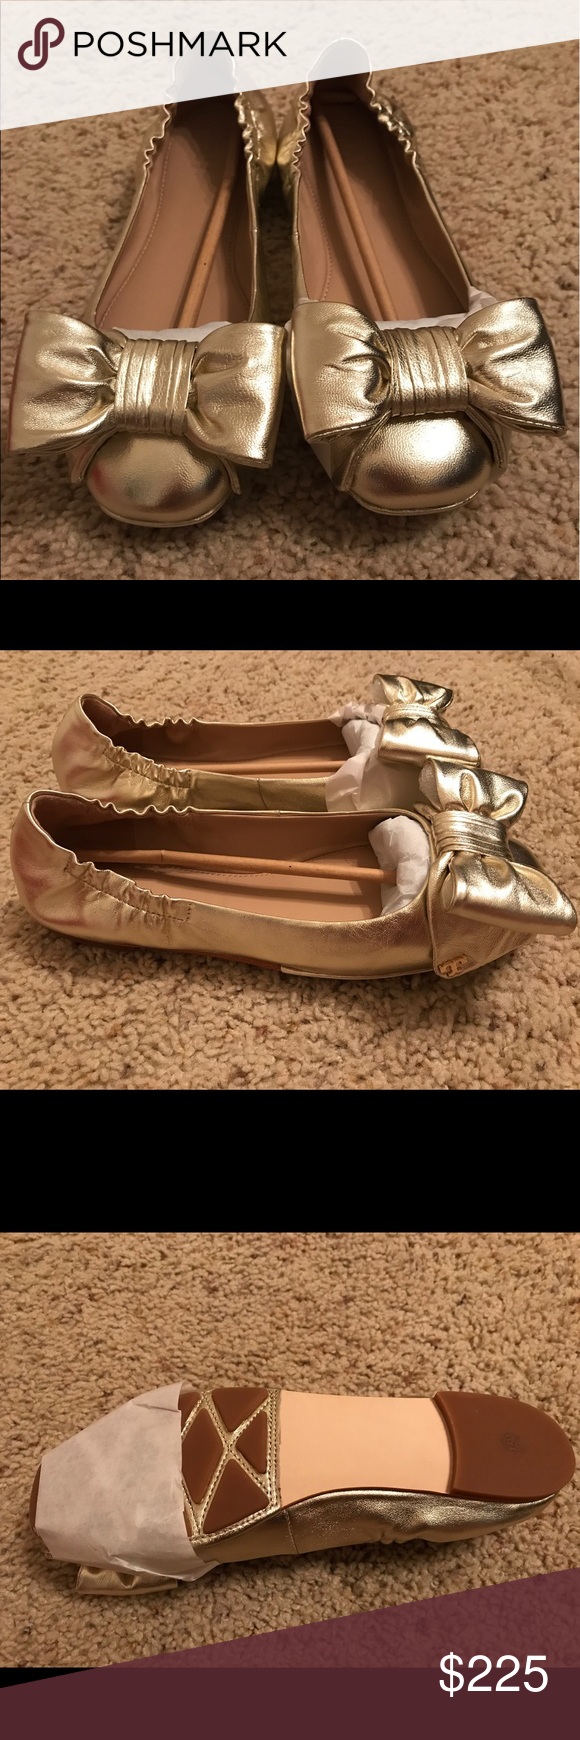 Tory Burch Divine Bow Driver Ballet Beautiful, brand new, in-box, never-been-worn, Tory Burch flats. Metallic Gold. Tory Burch Shoes Flats & Loafers